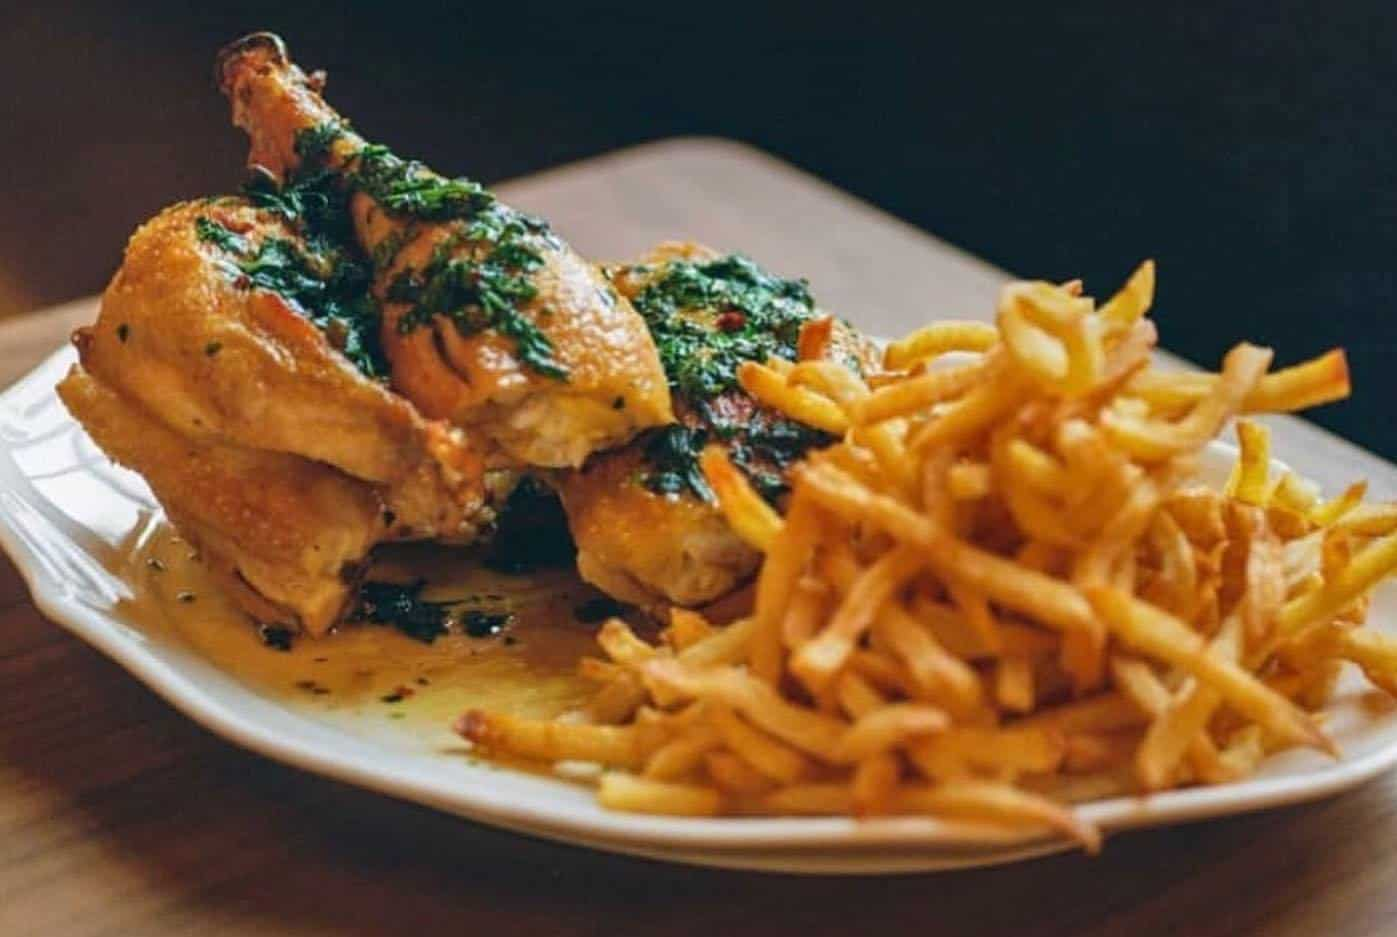 Roast Chicken and French fries from Le Crocodile